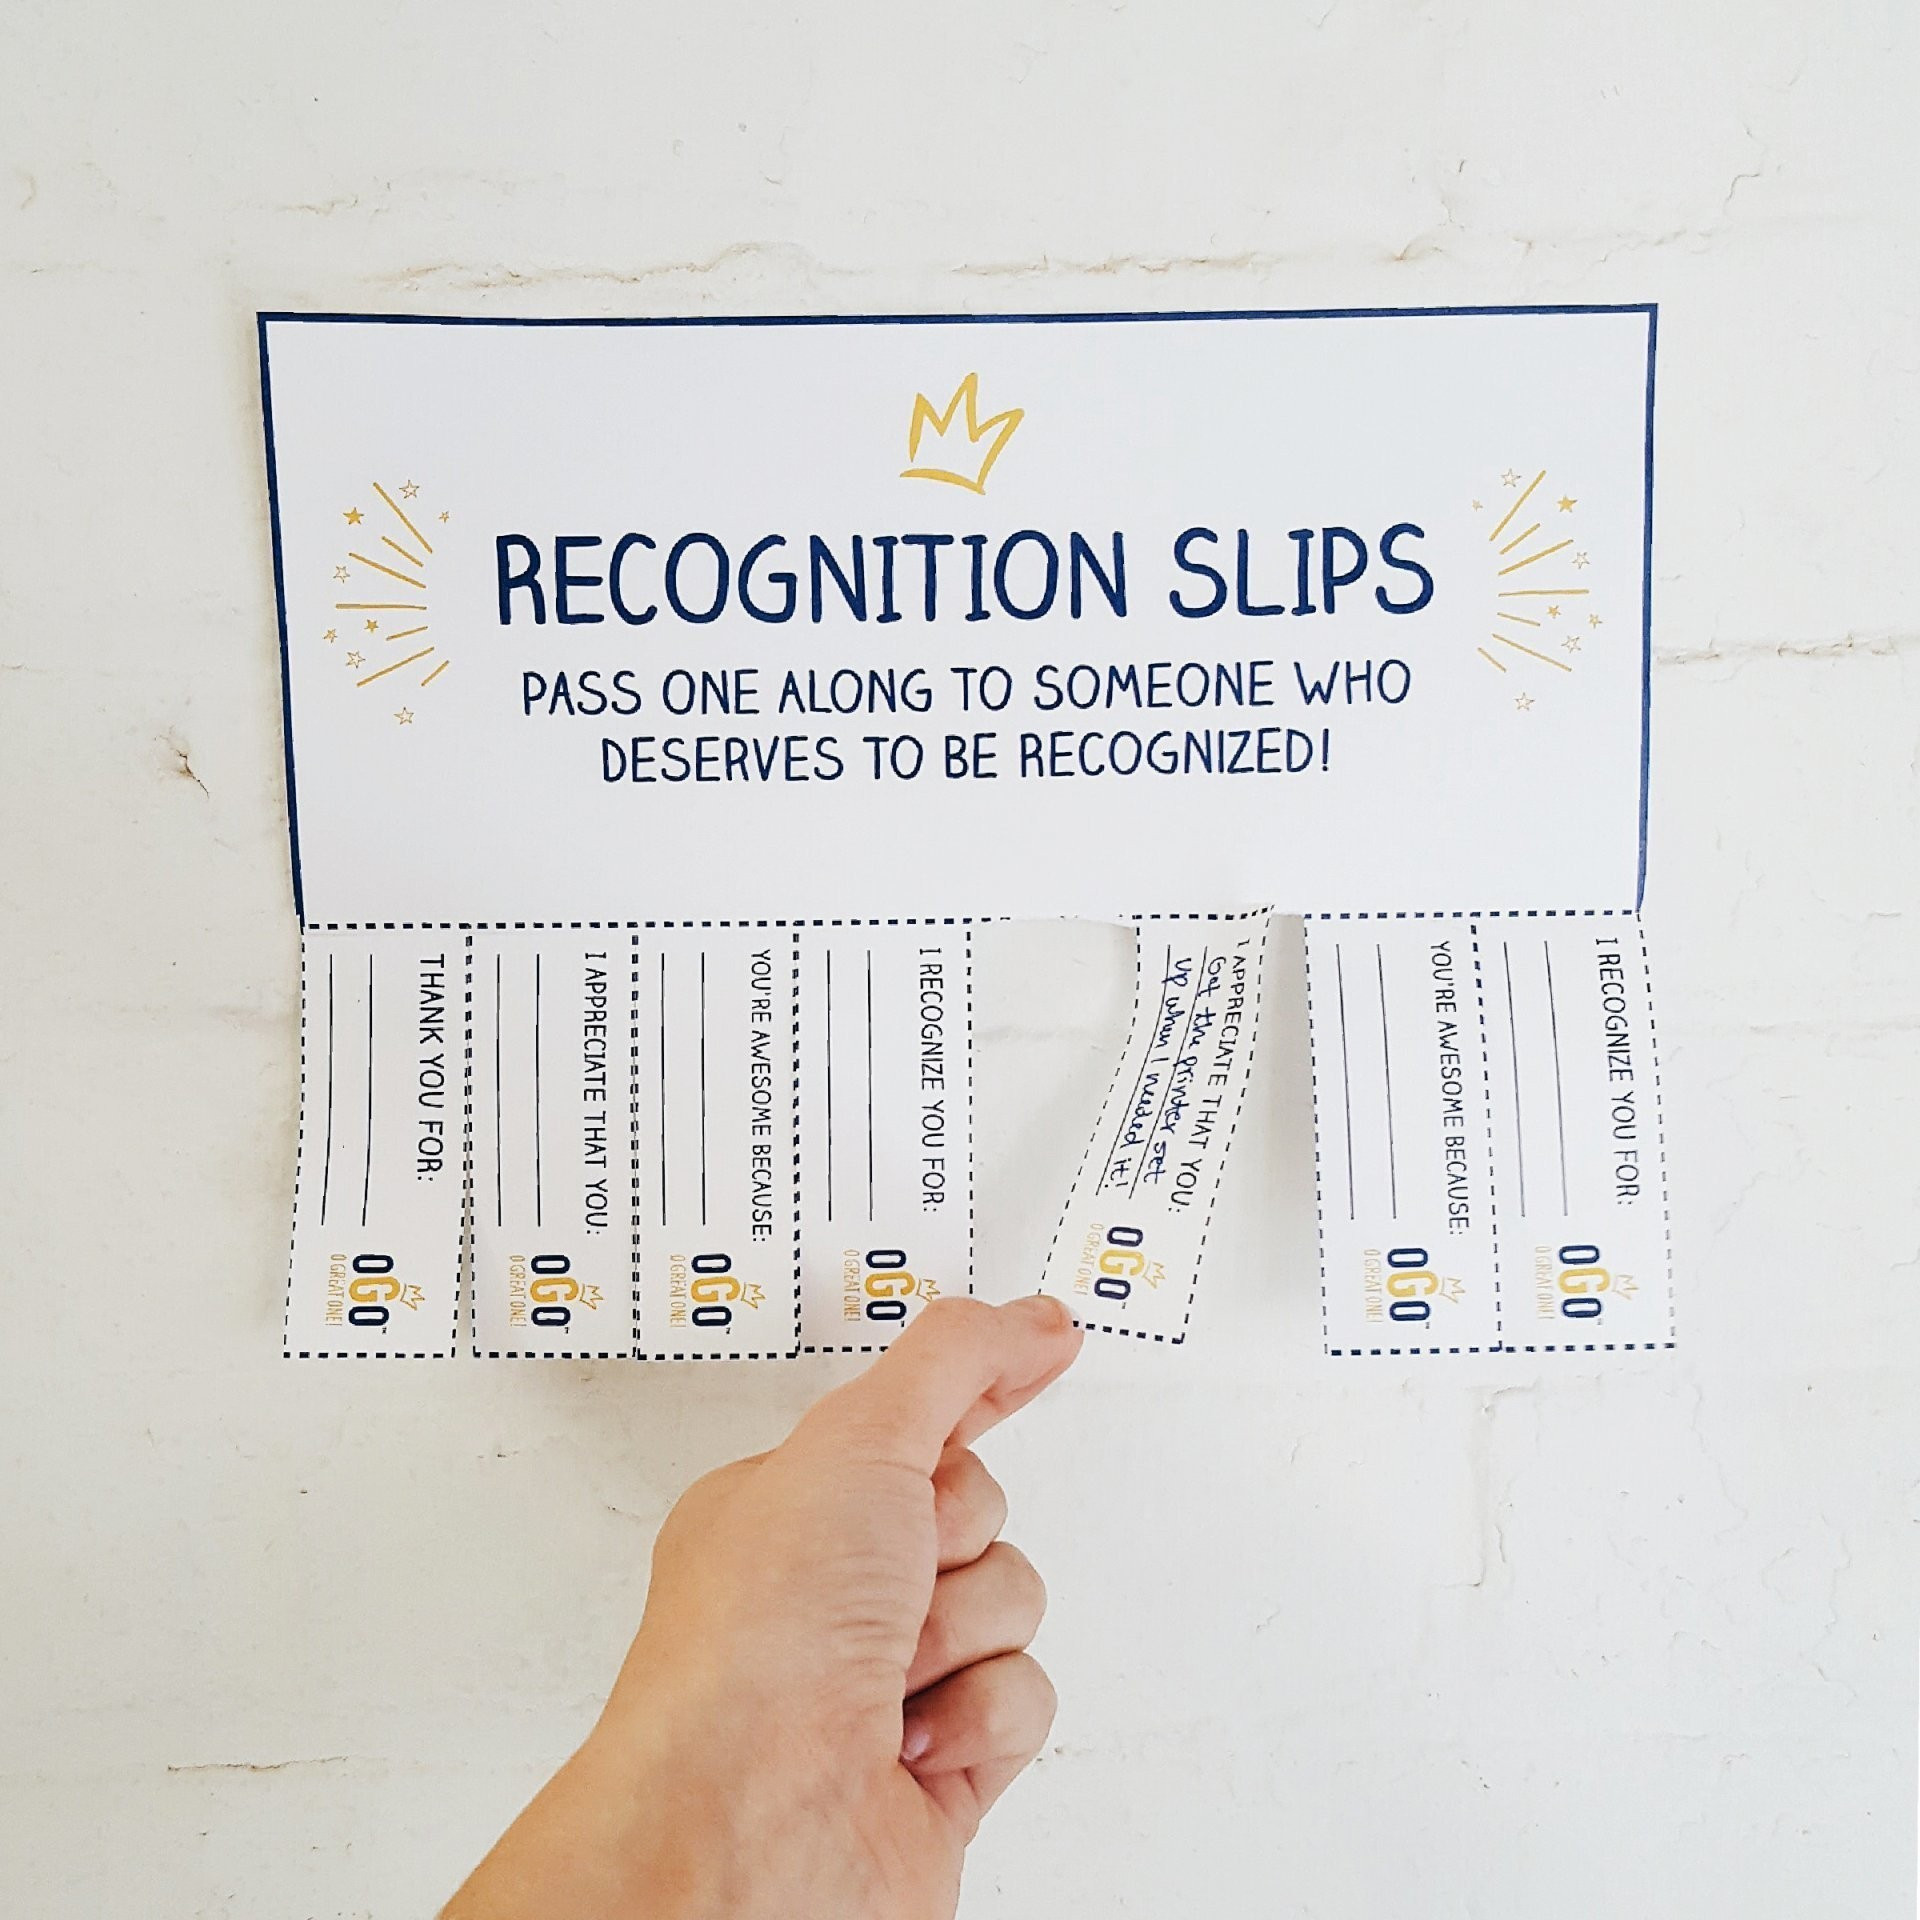 Download OGO Recognition Slips and Pass Them Along